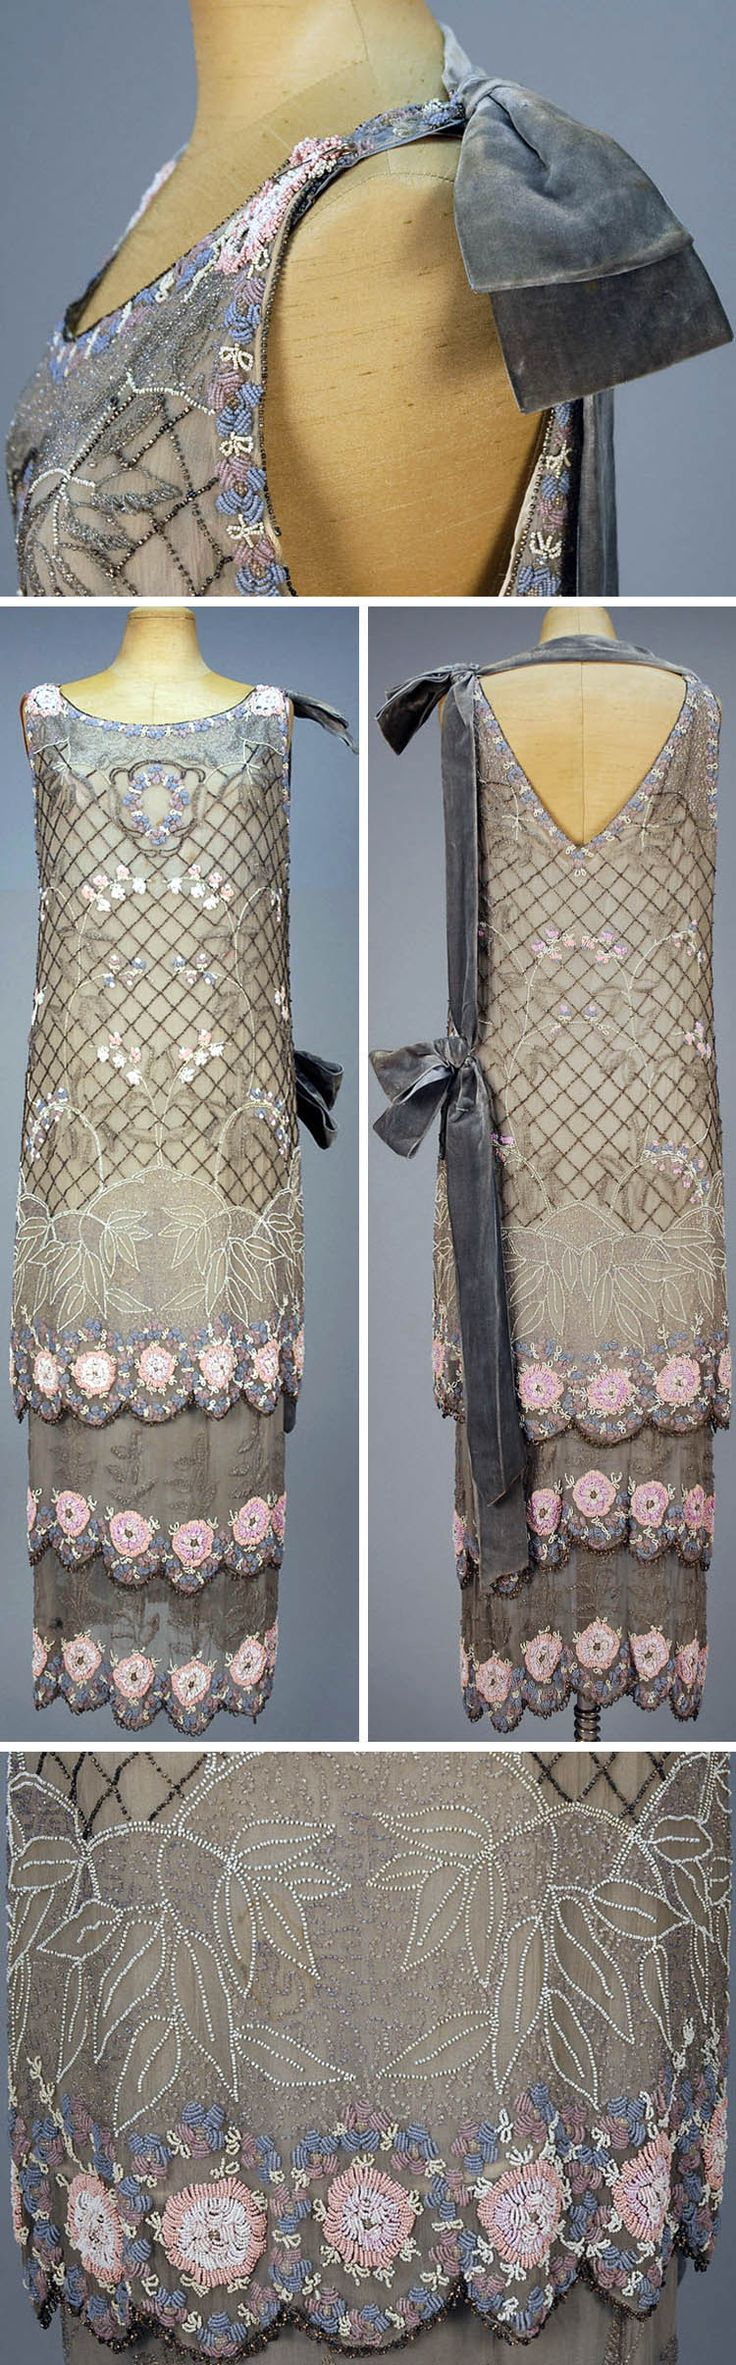 ~Two-piece gray silk evening dress ca. 1920s~  Sleeveless tunic and under-dress decorated with a pastel floral on a lattice of black iridill beads. Two-tiered under-dress; all with scalloped hem bands. Whitaker Auctions